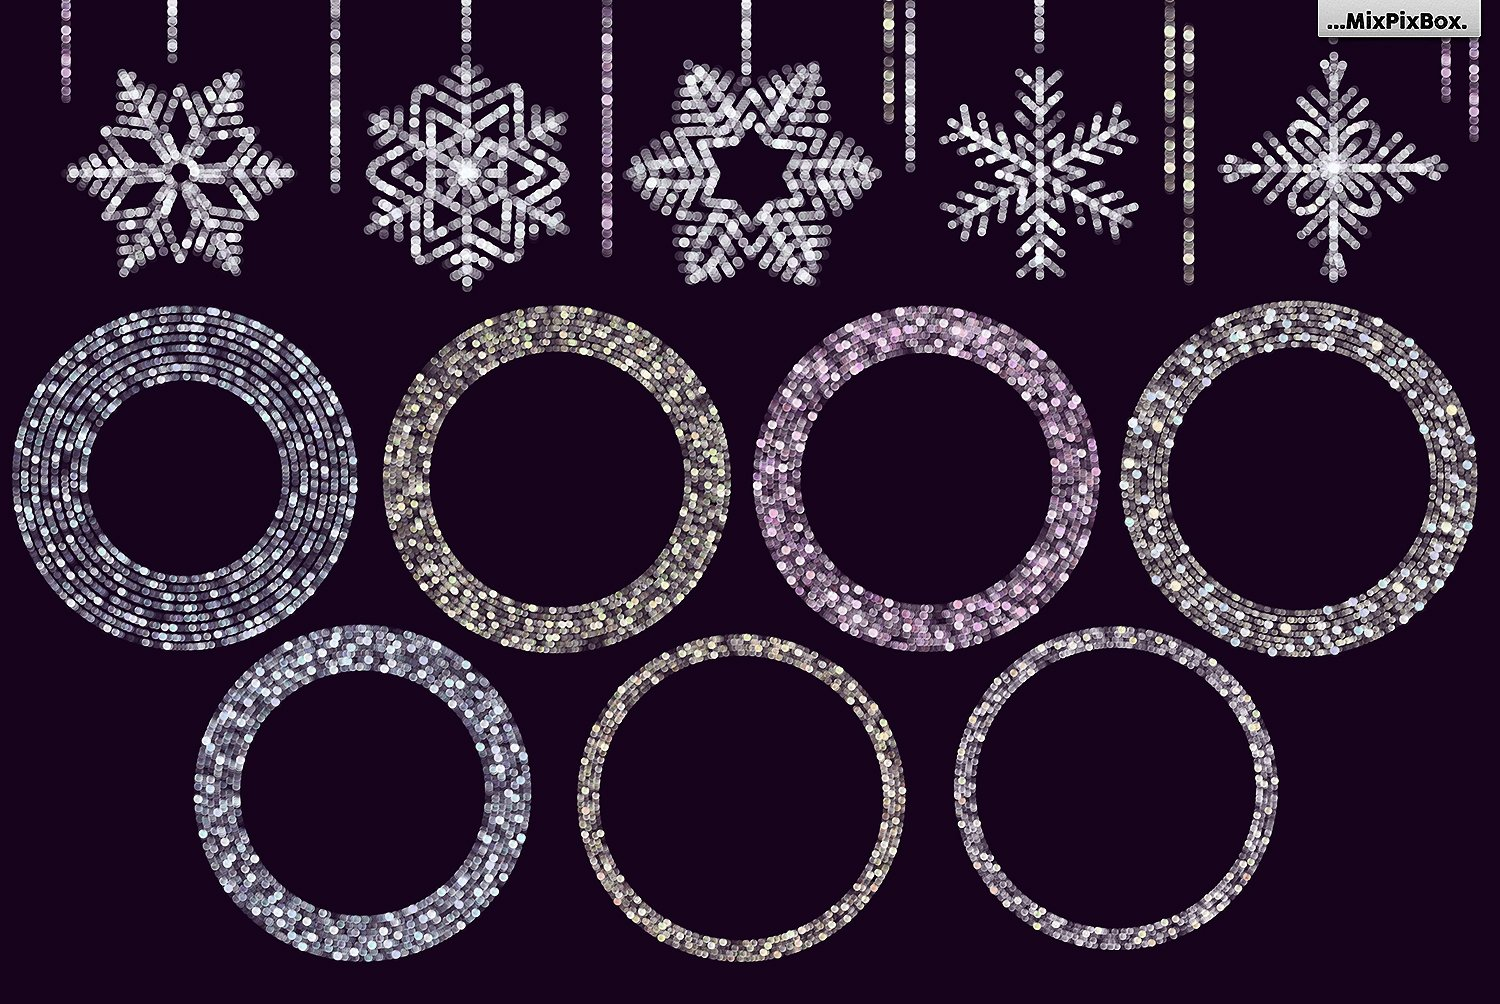 28 Snowflakes Photo Overlays - $8 - 5 9